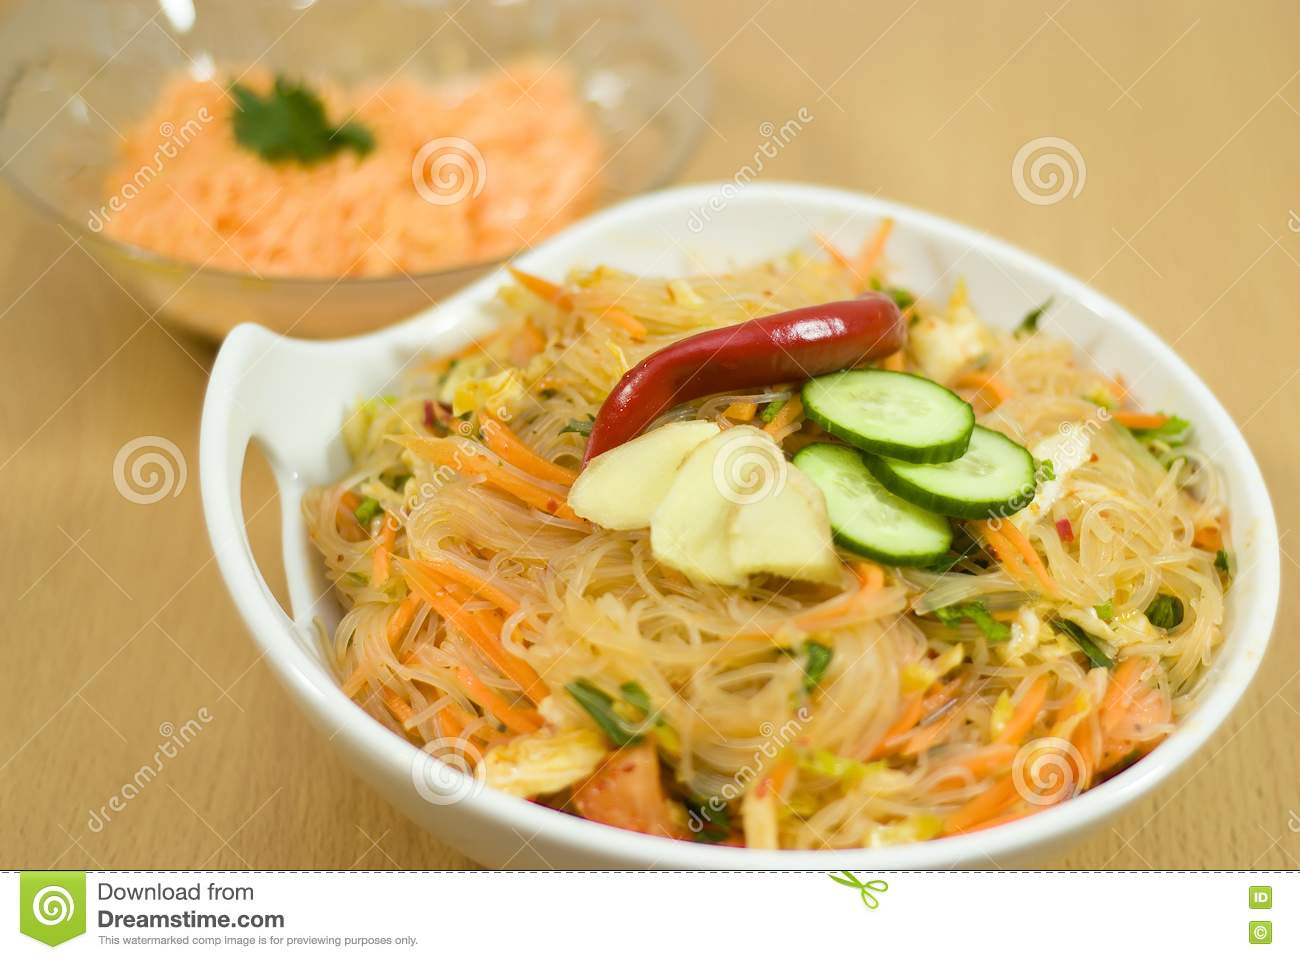 Salad of korean noodle in the white bowl